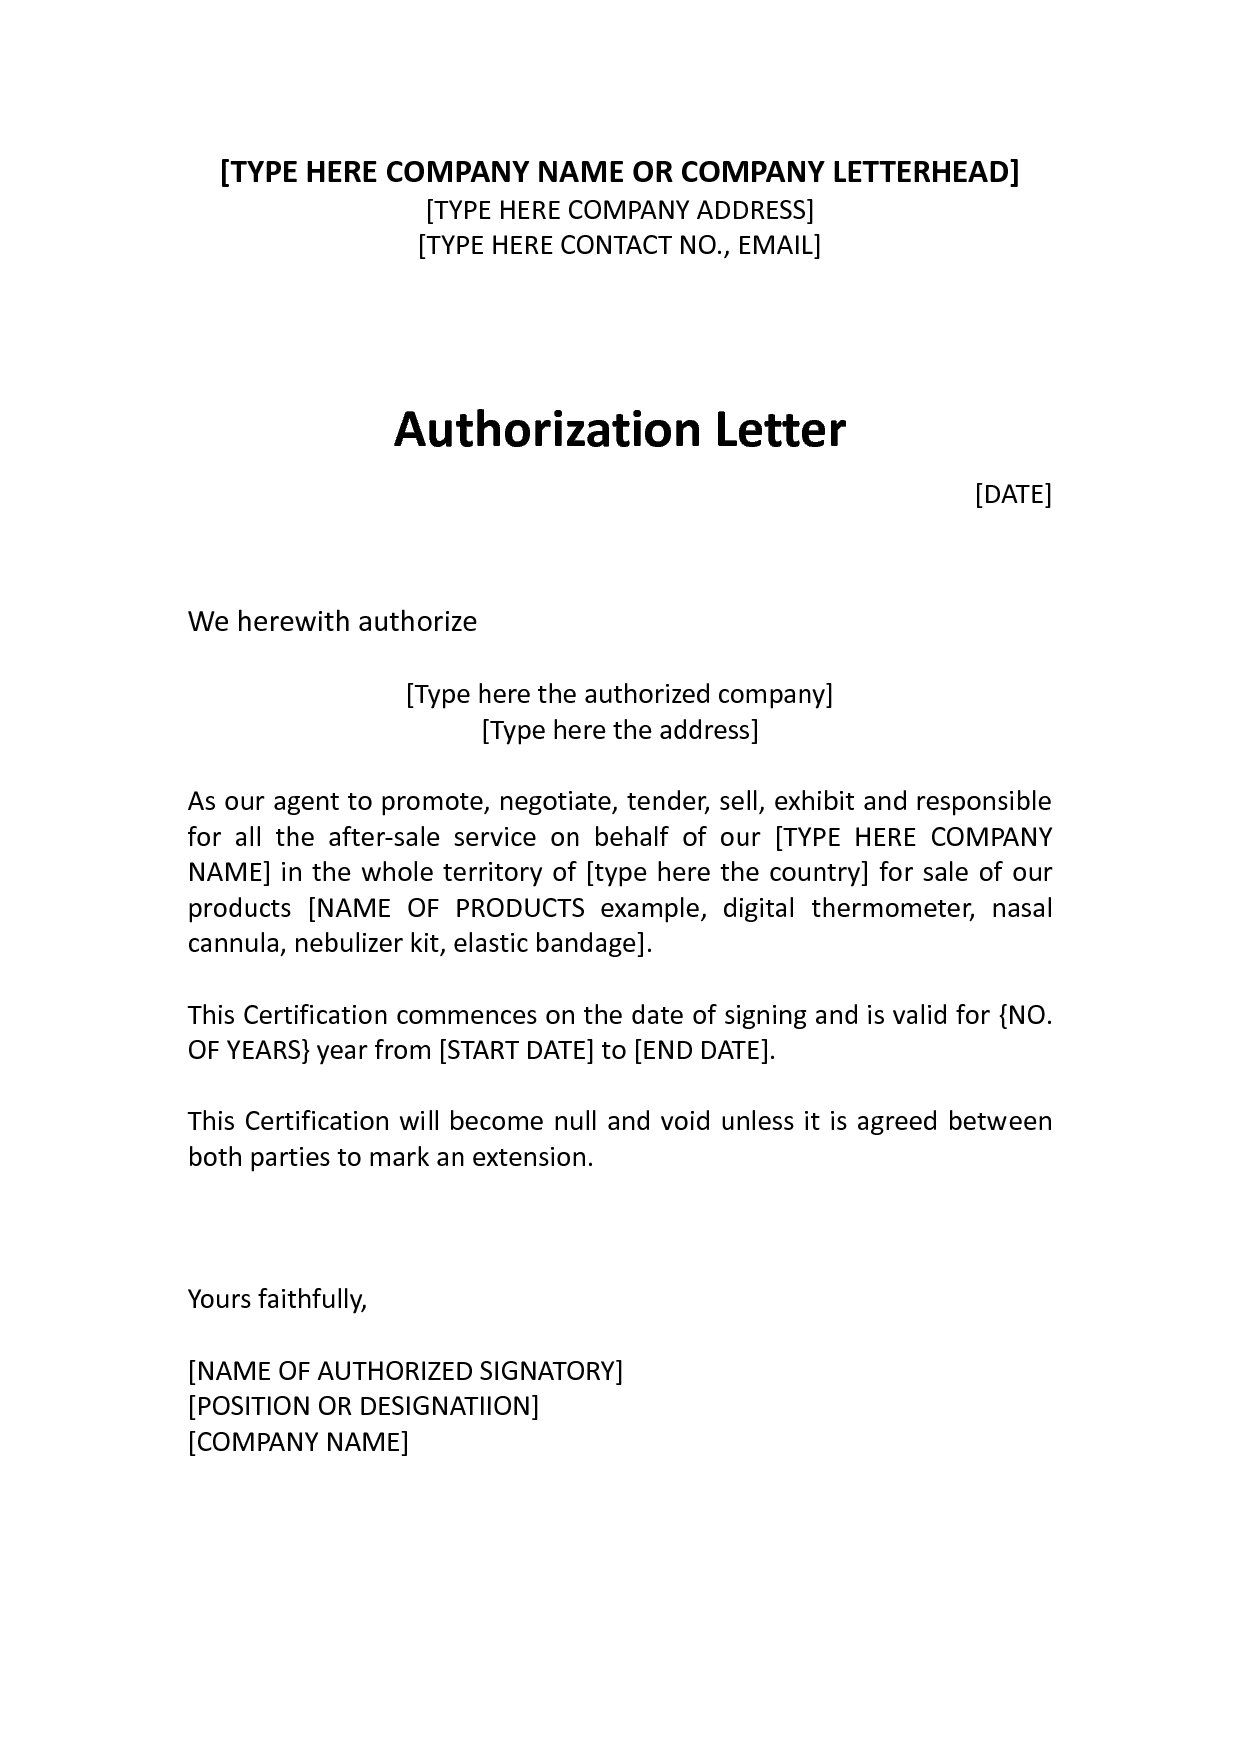 Authorization distributor letter sample distributor dealer authorization distributor letter sample distributor dealer authorization letter given by a company to its distributor or dealer spiritdancerdesigns Image collections